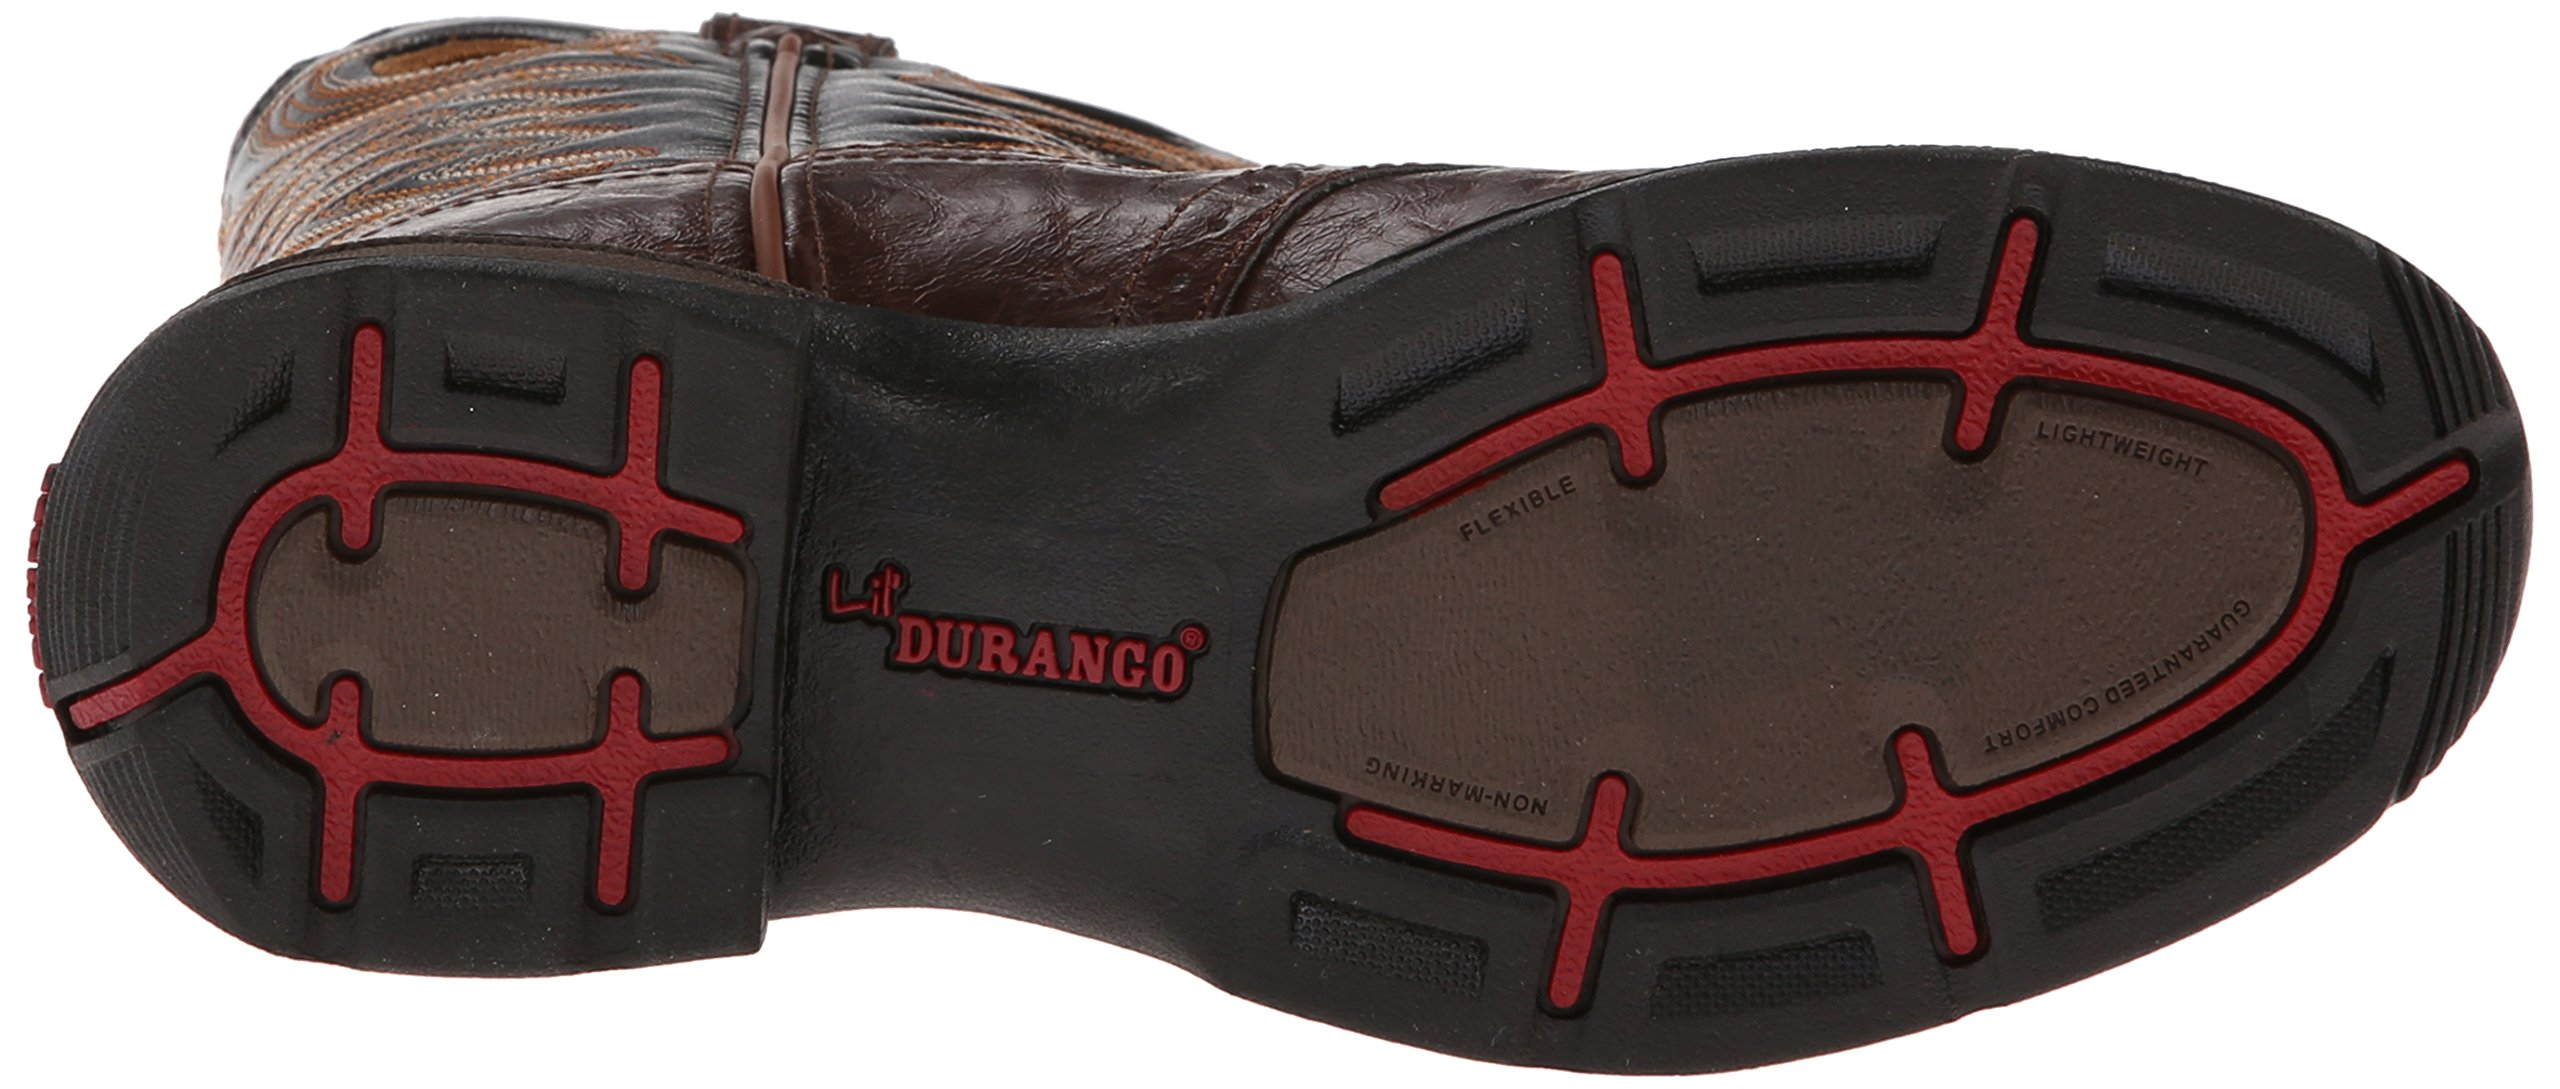 Durango Kids BT200 Lil' 8 Inch Saddle,Chestnut/Black,2 M US Little Kid by Durango (Image #3)